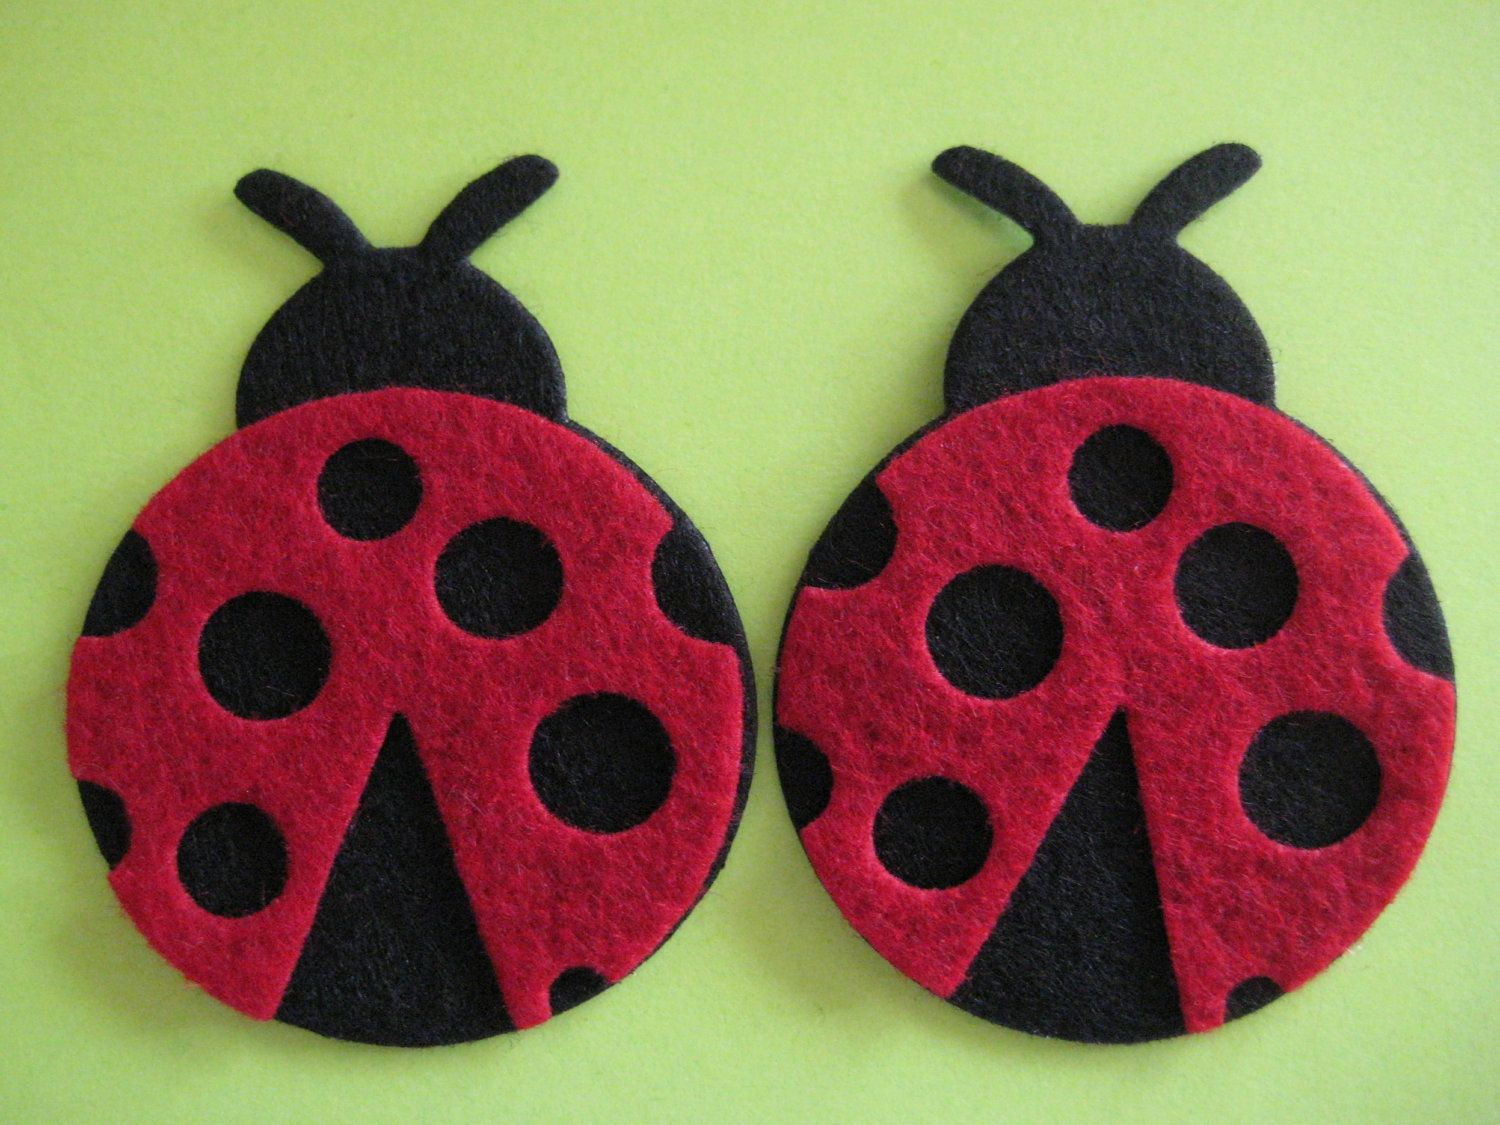 Ladybug ornaments - Lady Bug Felt Ornaments Baby Shower Party Favors Crafting Embellishment Scrapbooking 1 5 X 2 37 50 Mm 50 Mm 6 Pieces